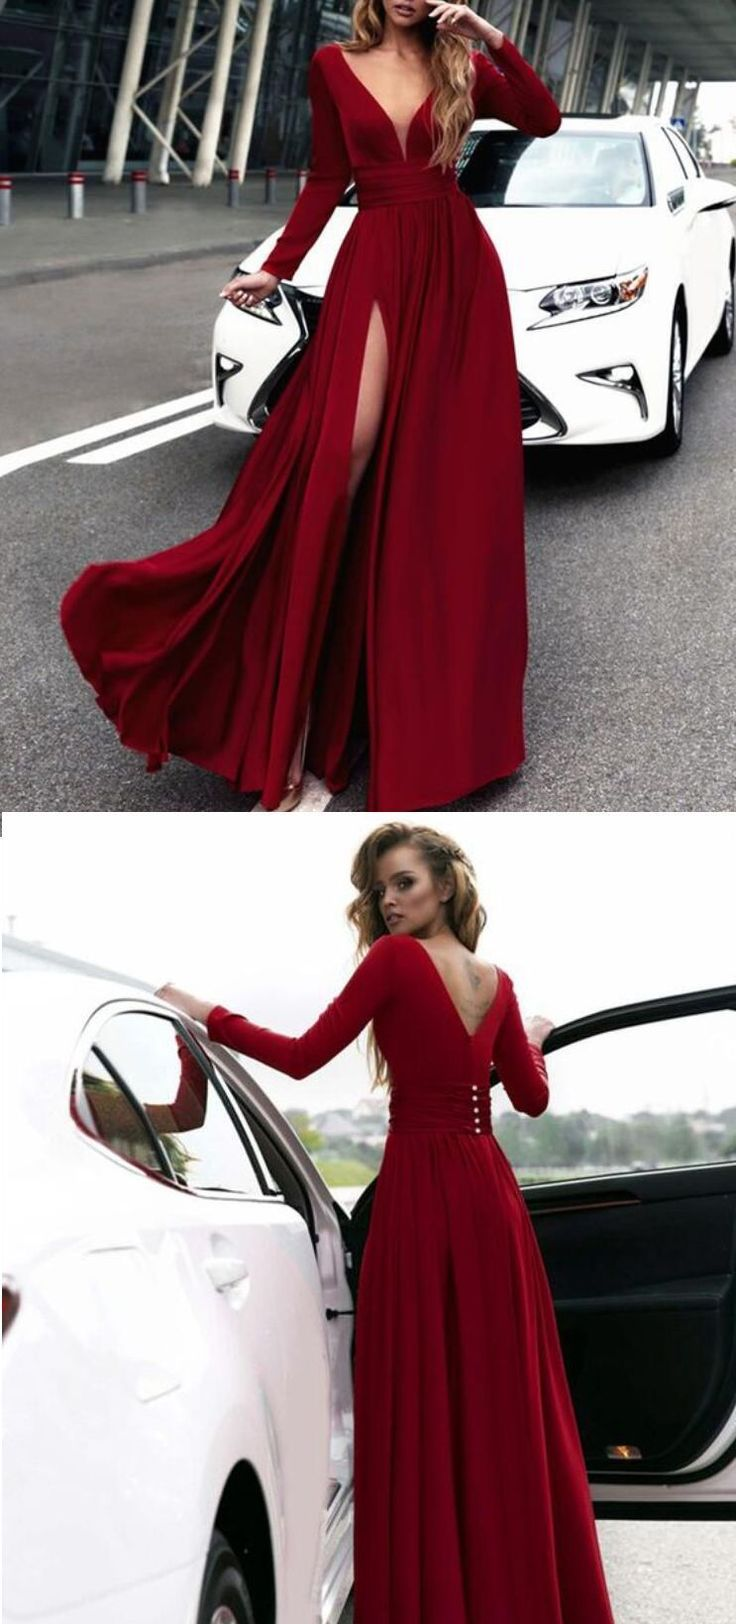 Long Sleeves Formal Evening Gown Wine Red,V Neck Prom Dress With High Slit #longpromdresses #danceoutfits